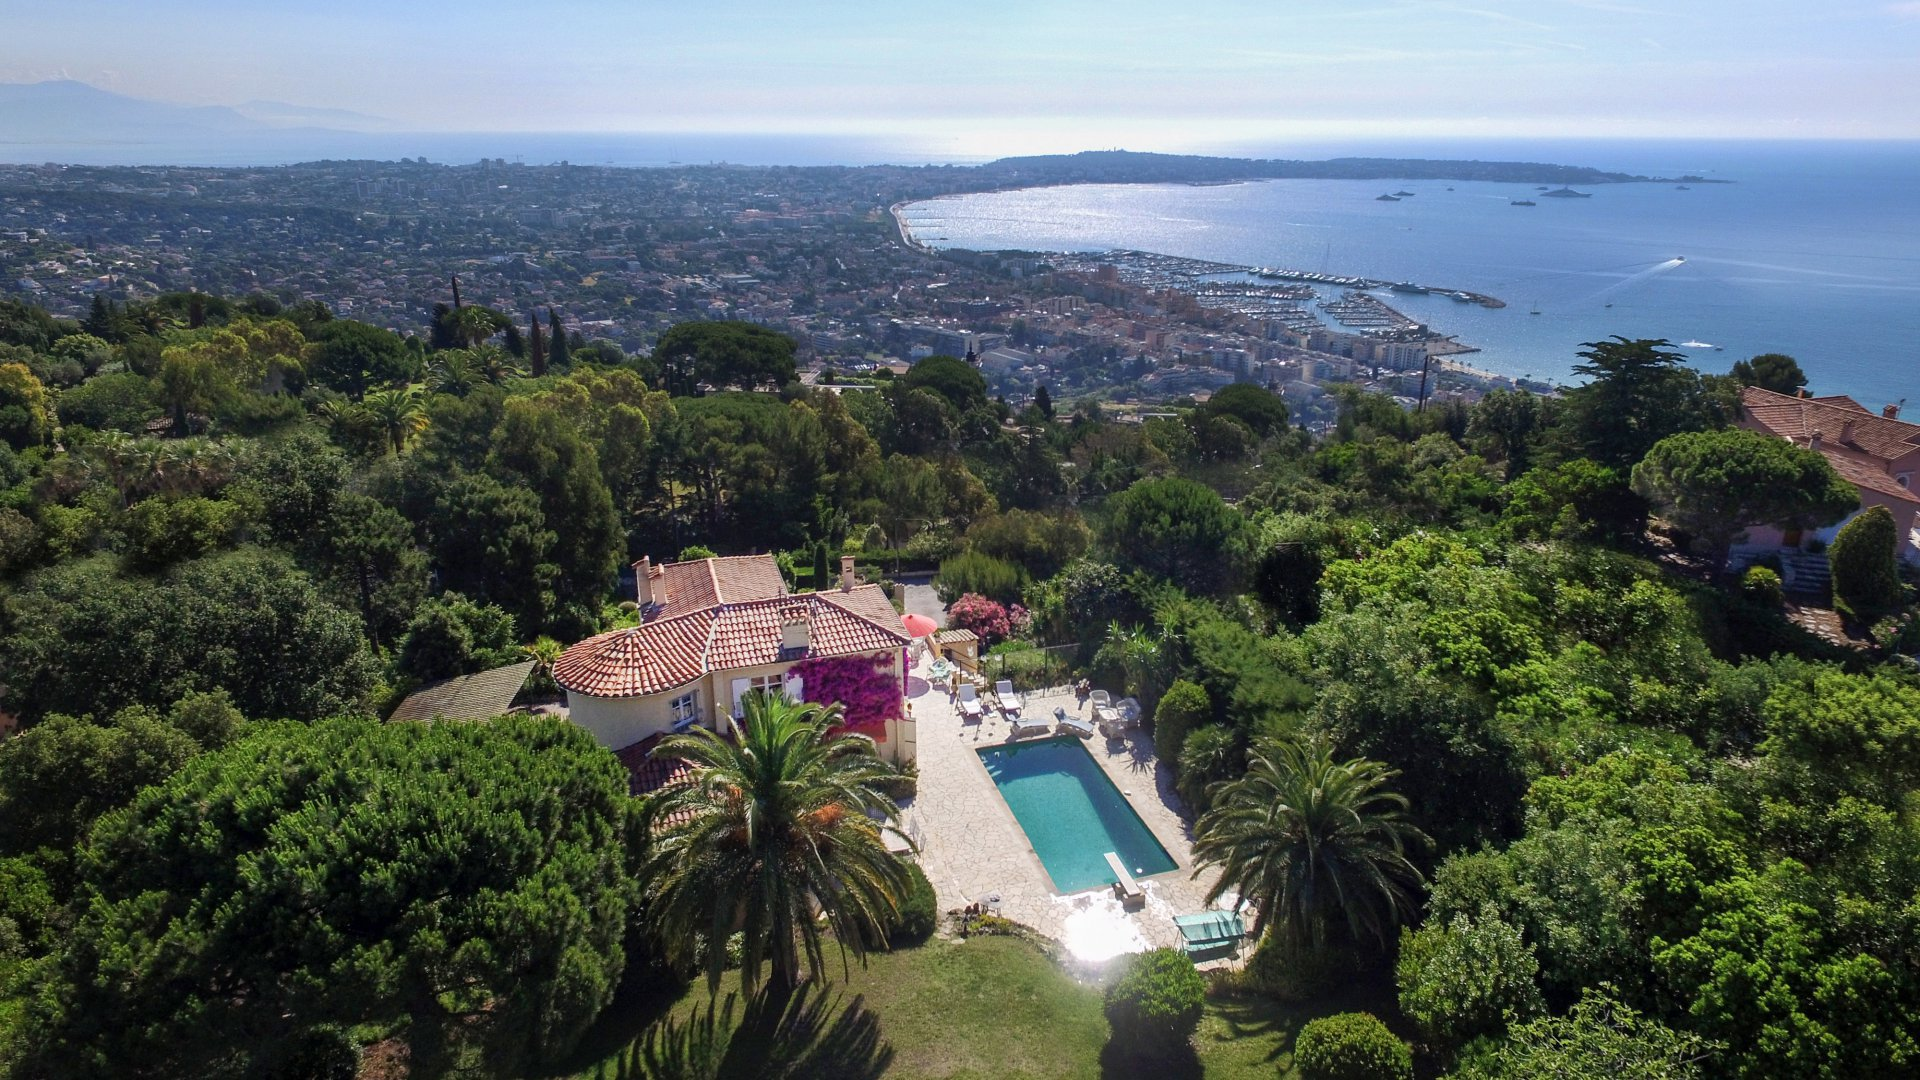 SUPER CANNES - IN A RESIDENTIAL AREA - PROPERTY INCLUDING 2 VILLAS